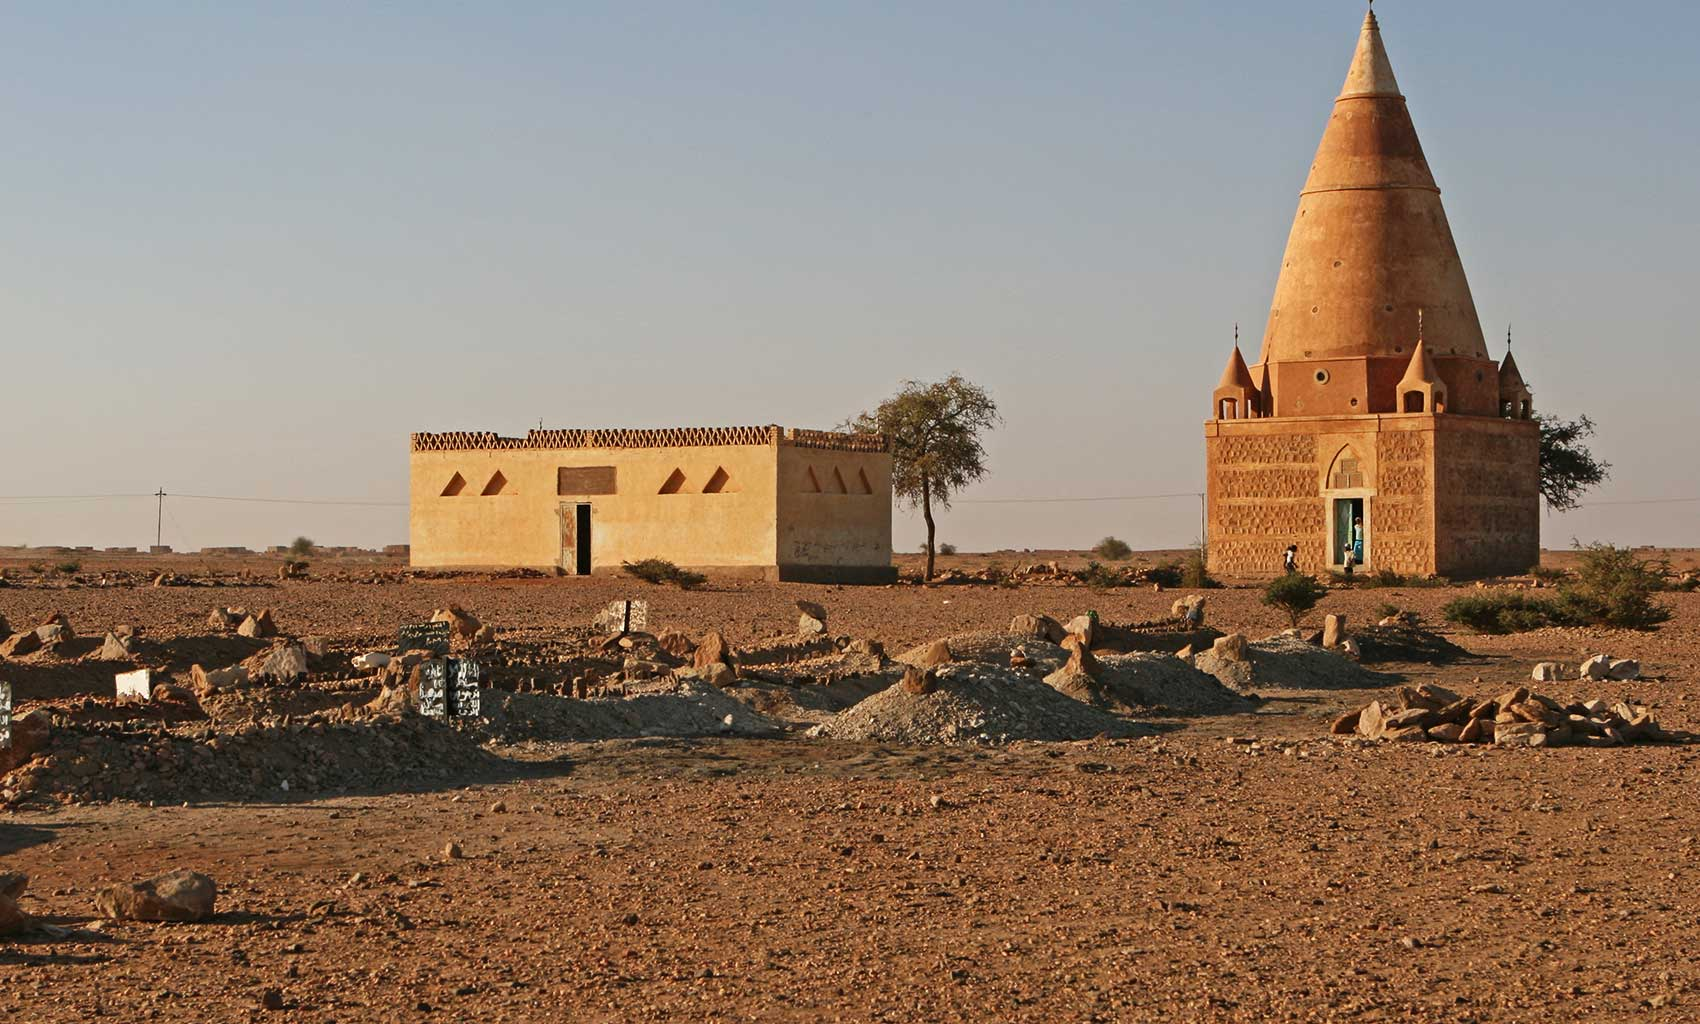 IMG_7159 Mosque and graves.jpg